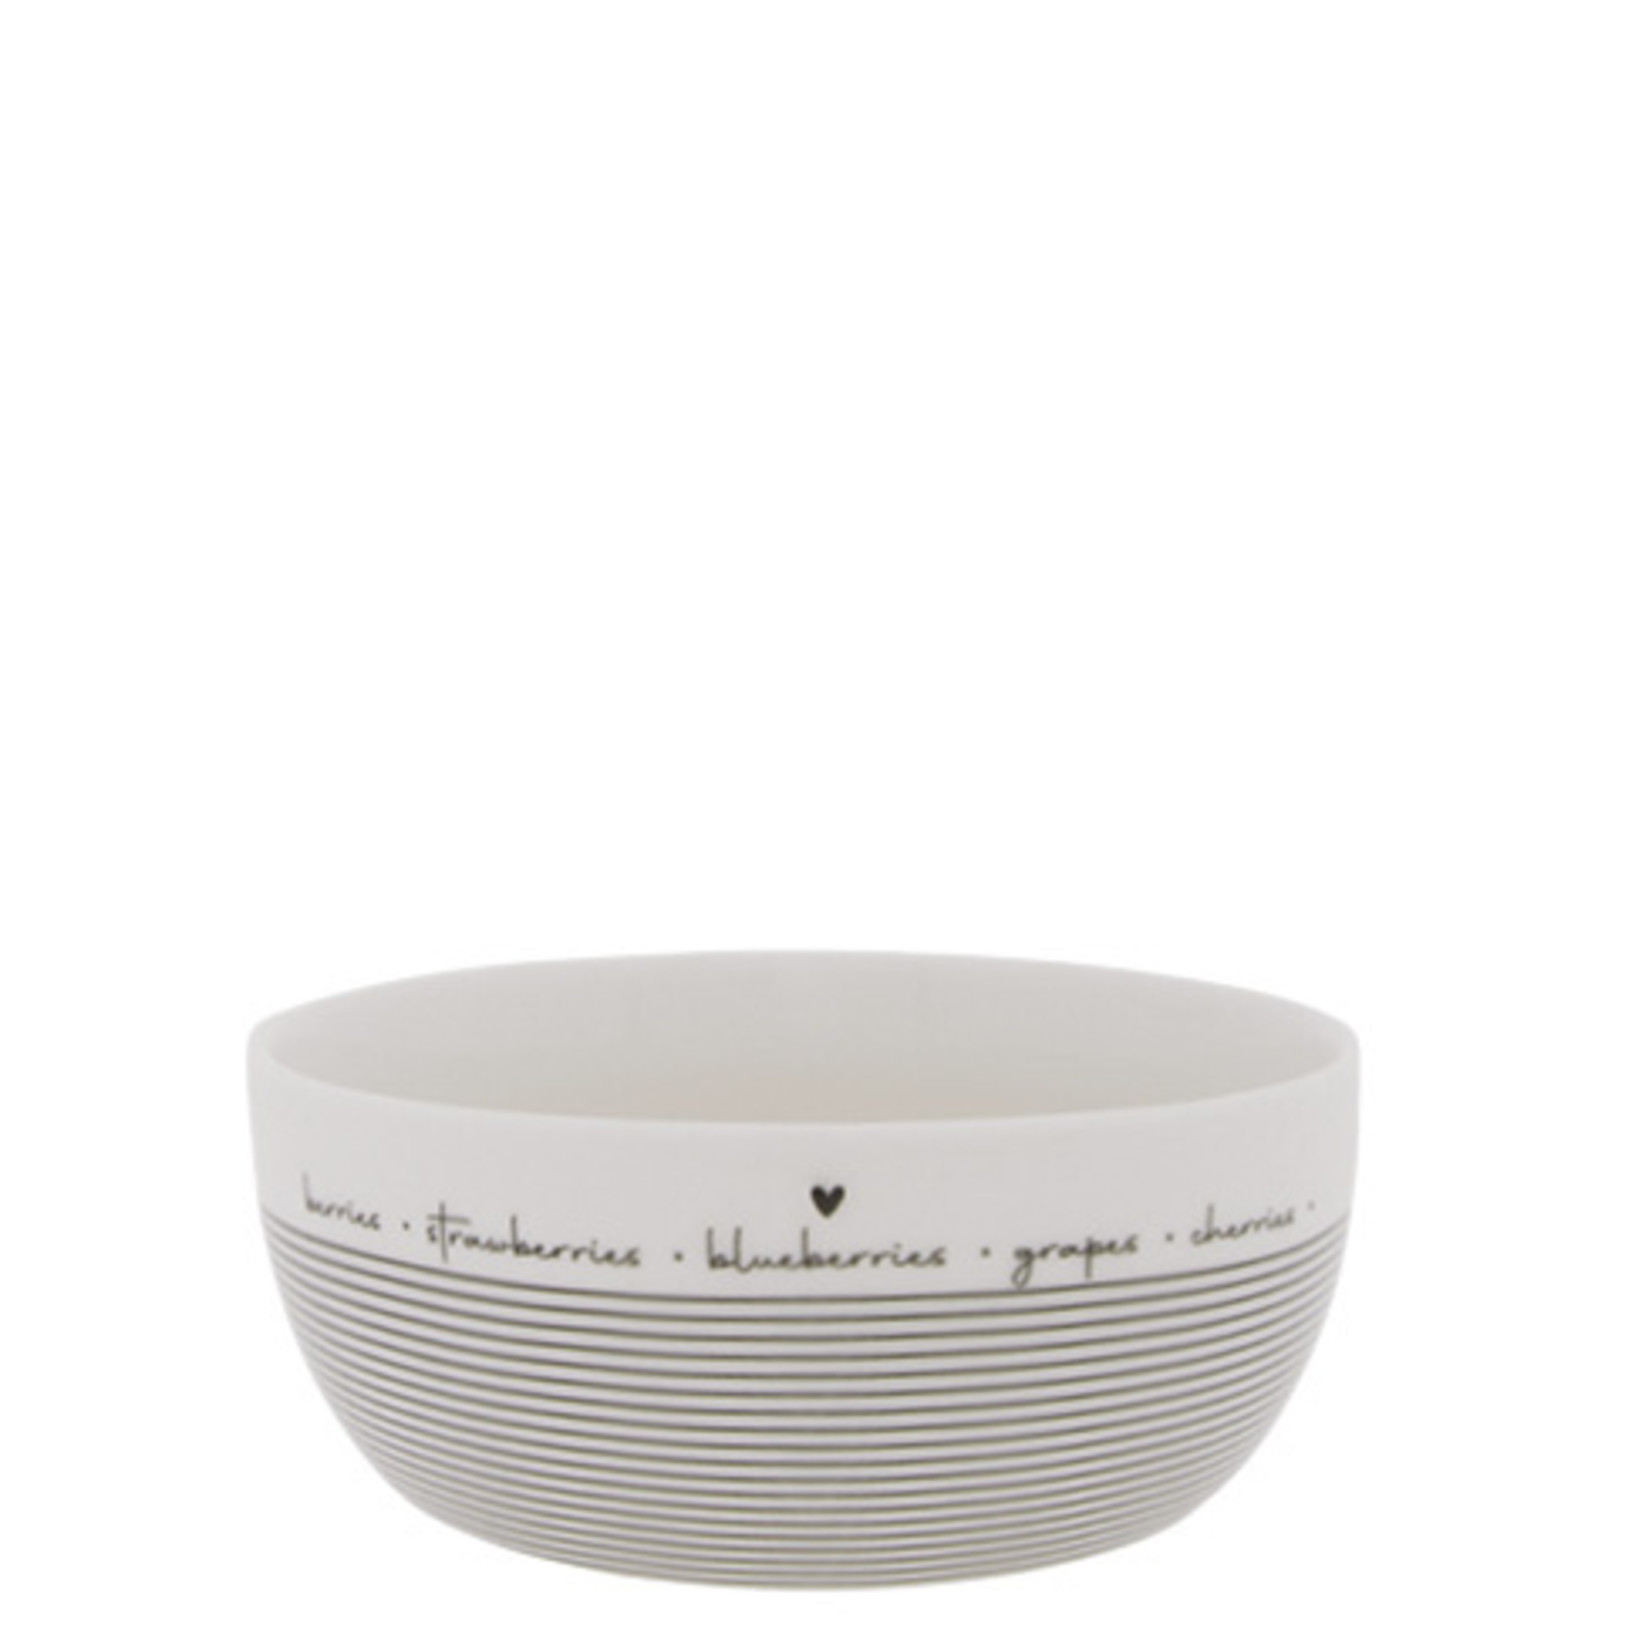 Bastion Collections Fruit Bowl Large Blackberry